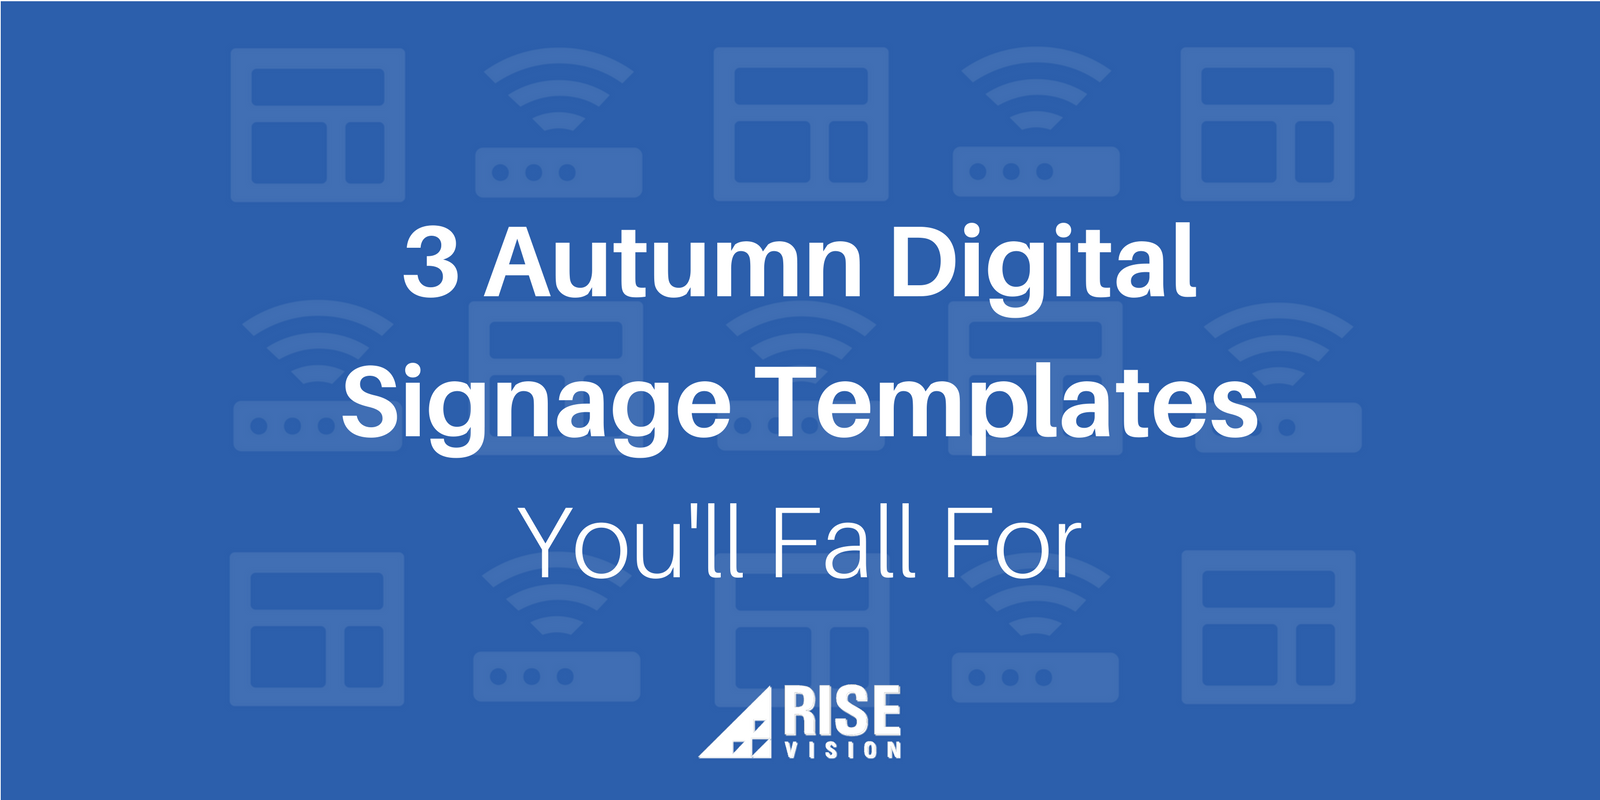 3 Autumn Digital Signage Template Examples and Ideas You'll Fall For.png